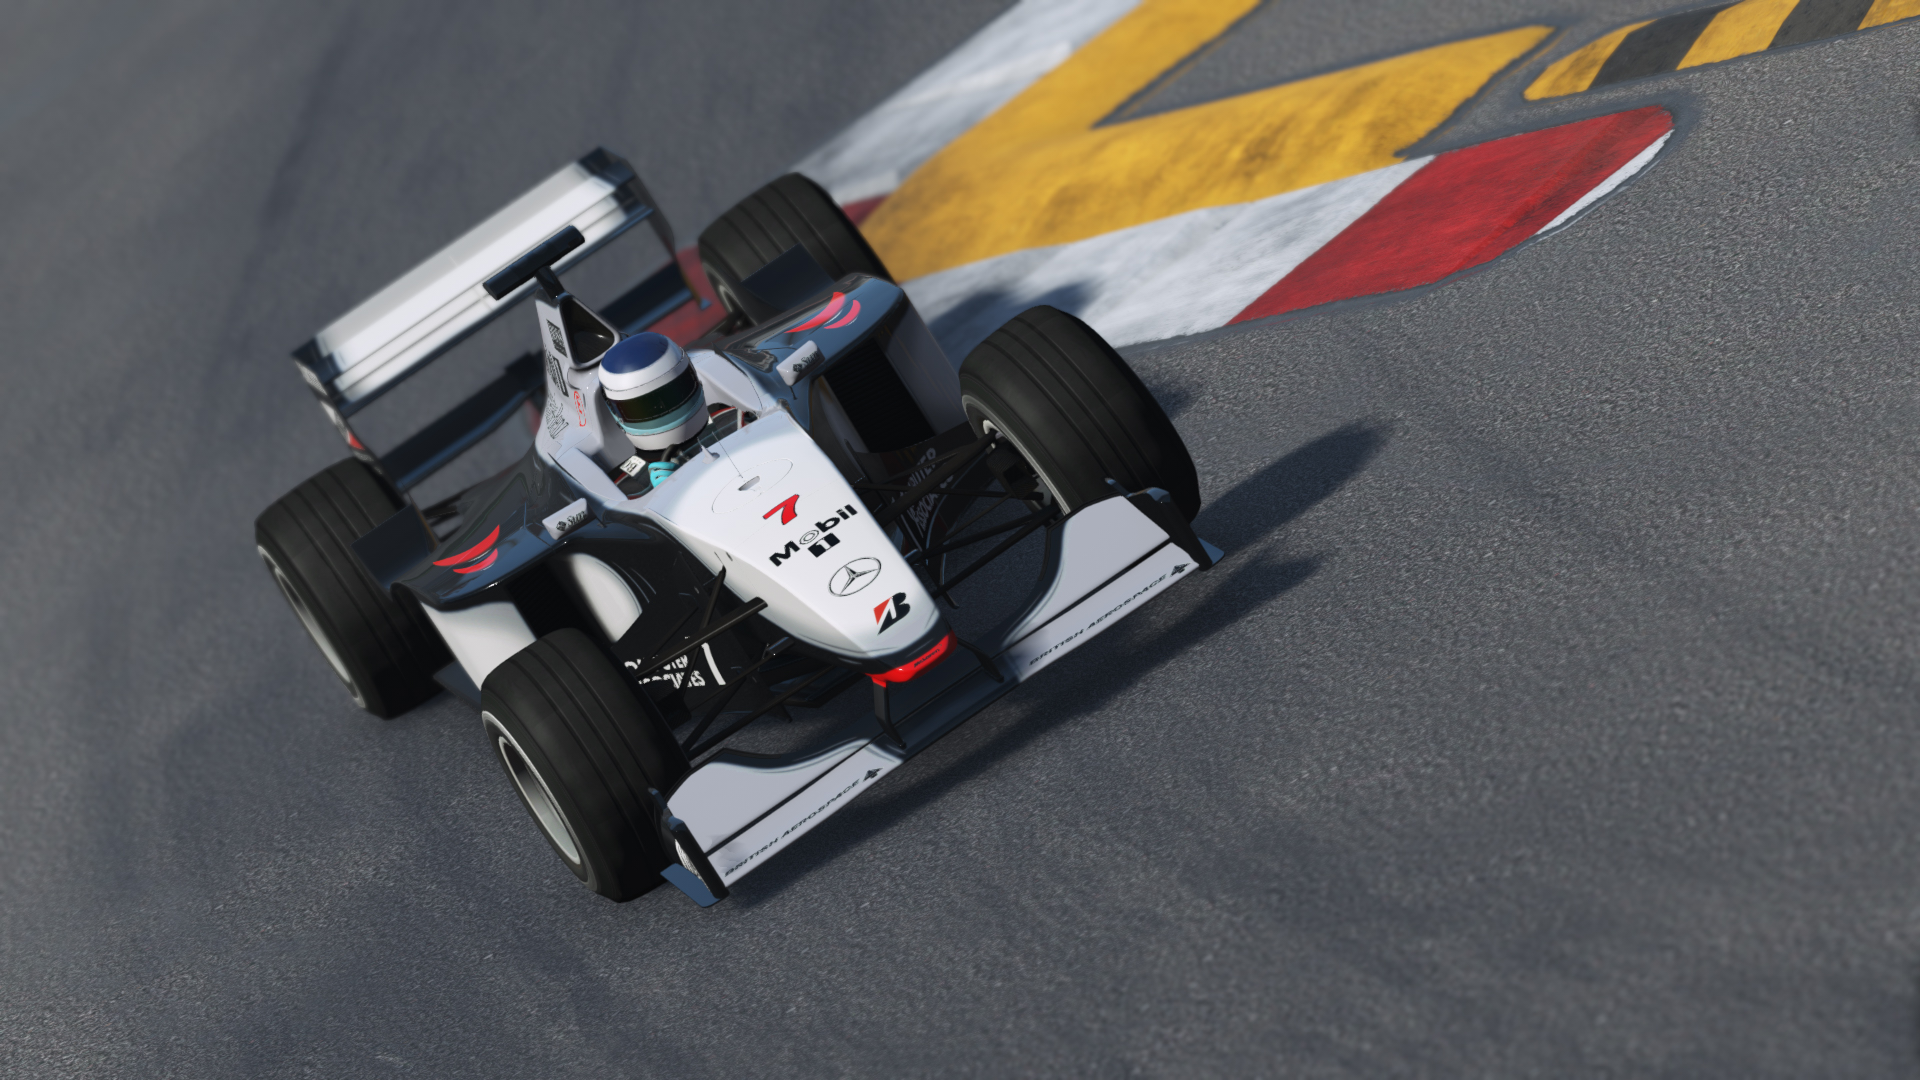 McLaren_MP413_pbr_screenshot_02_raw.jpg